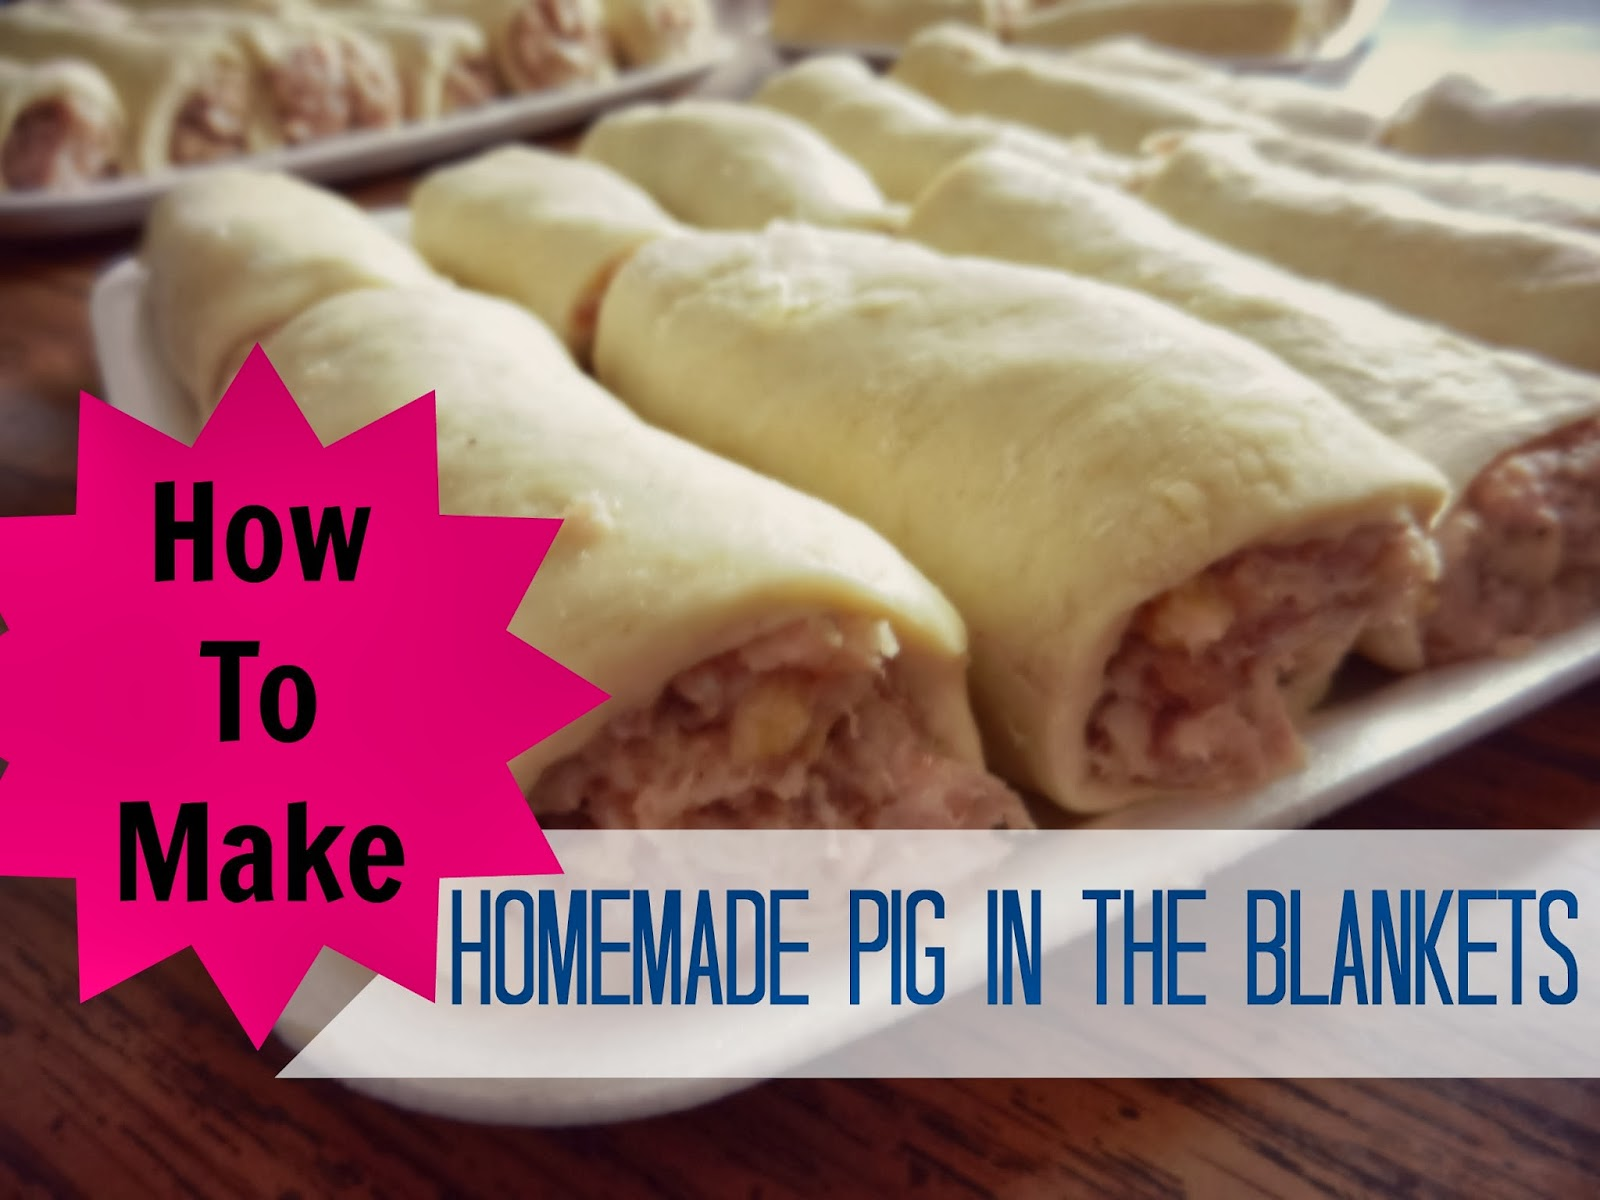 How To Make Dutch Pig-In-The-Blankets